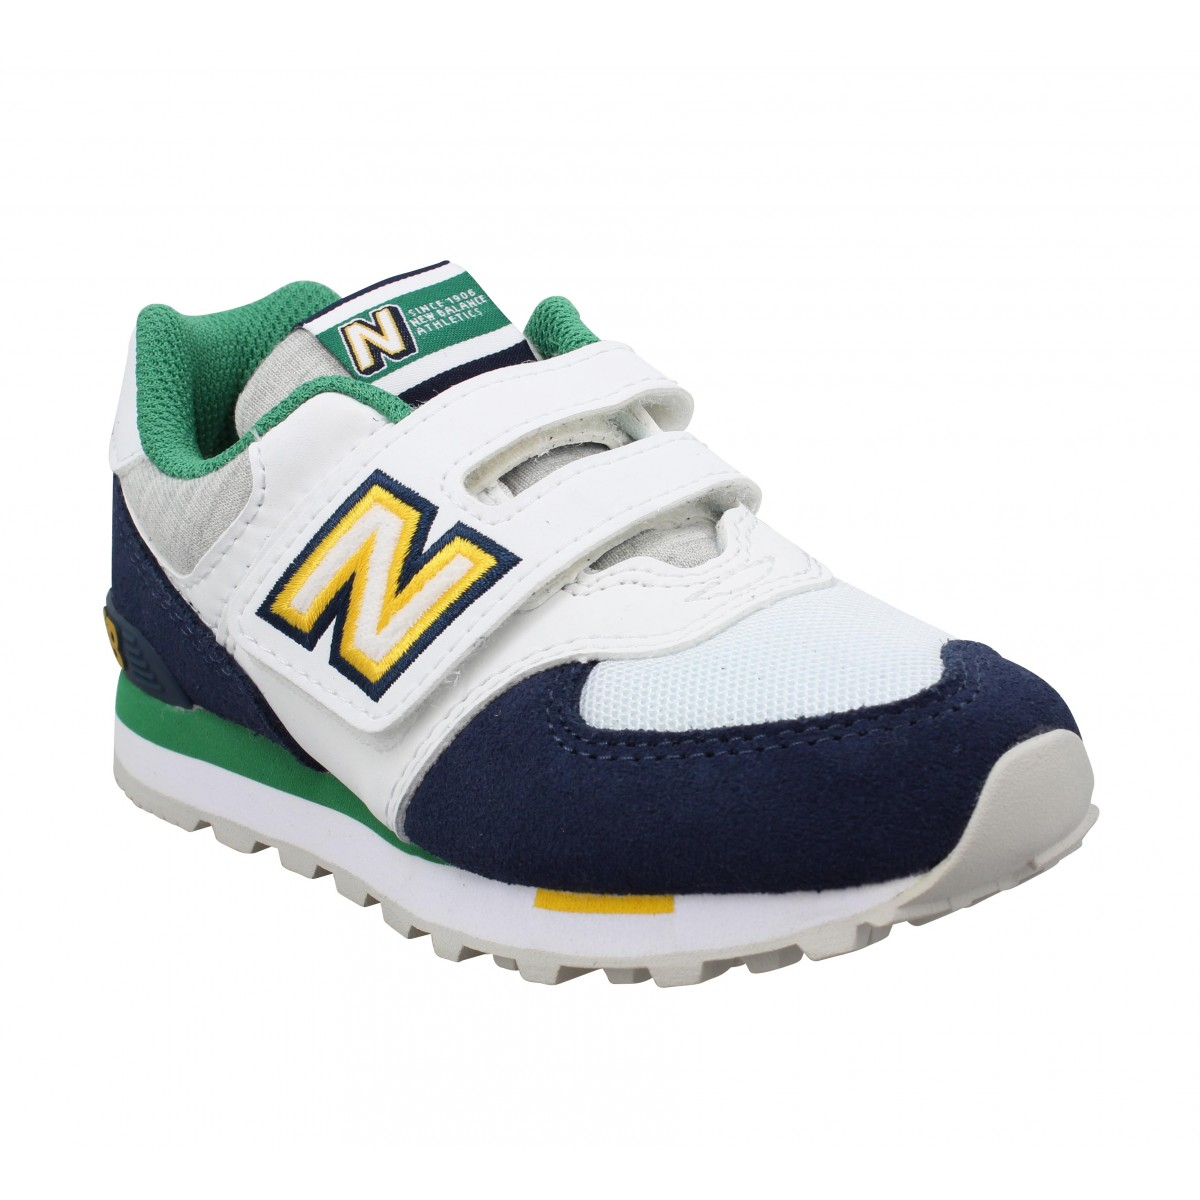 Baskets NEW BALANCE 574 velours toile Enfant Marine Blanc